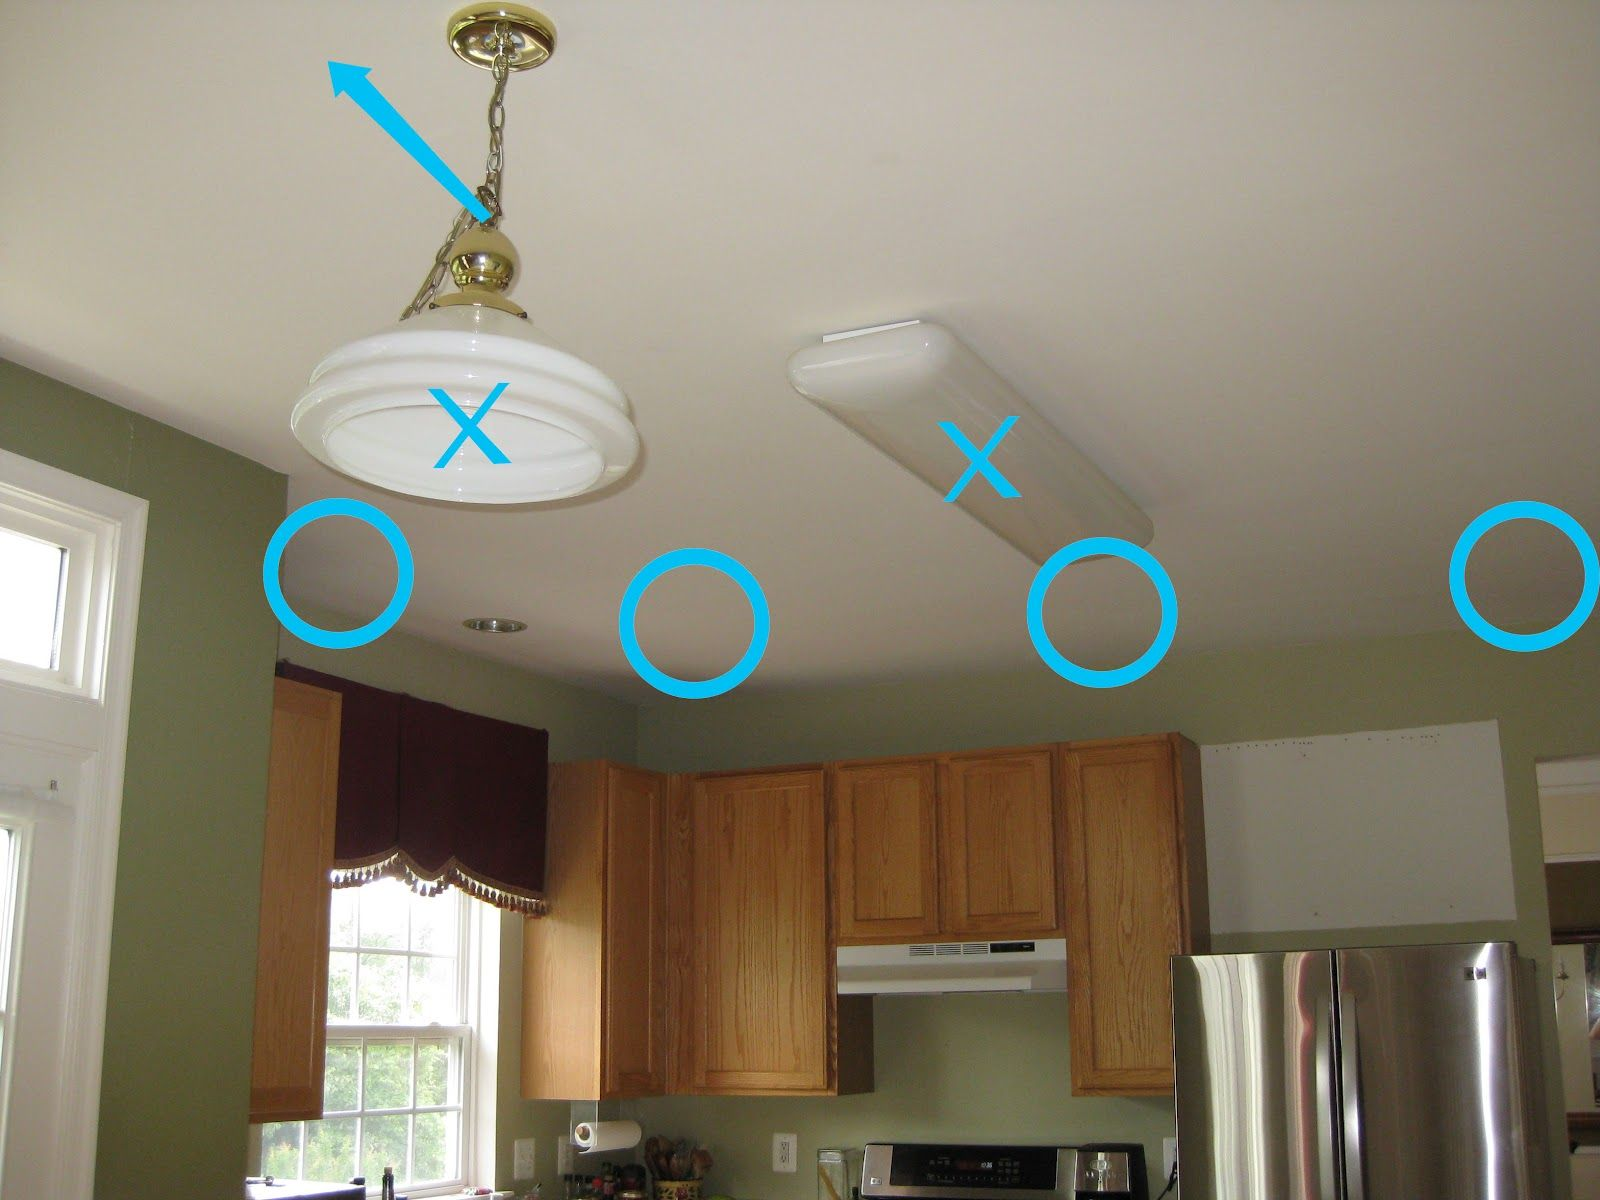 Thinking about installing recessed lights? | Kitchens, Articles and ...